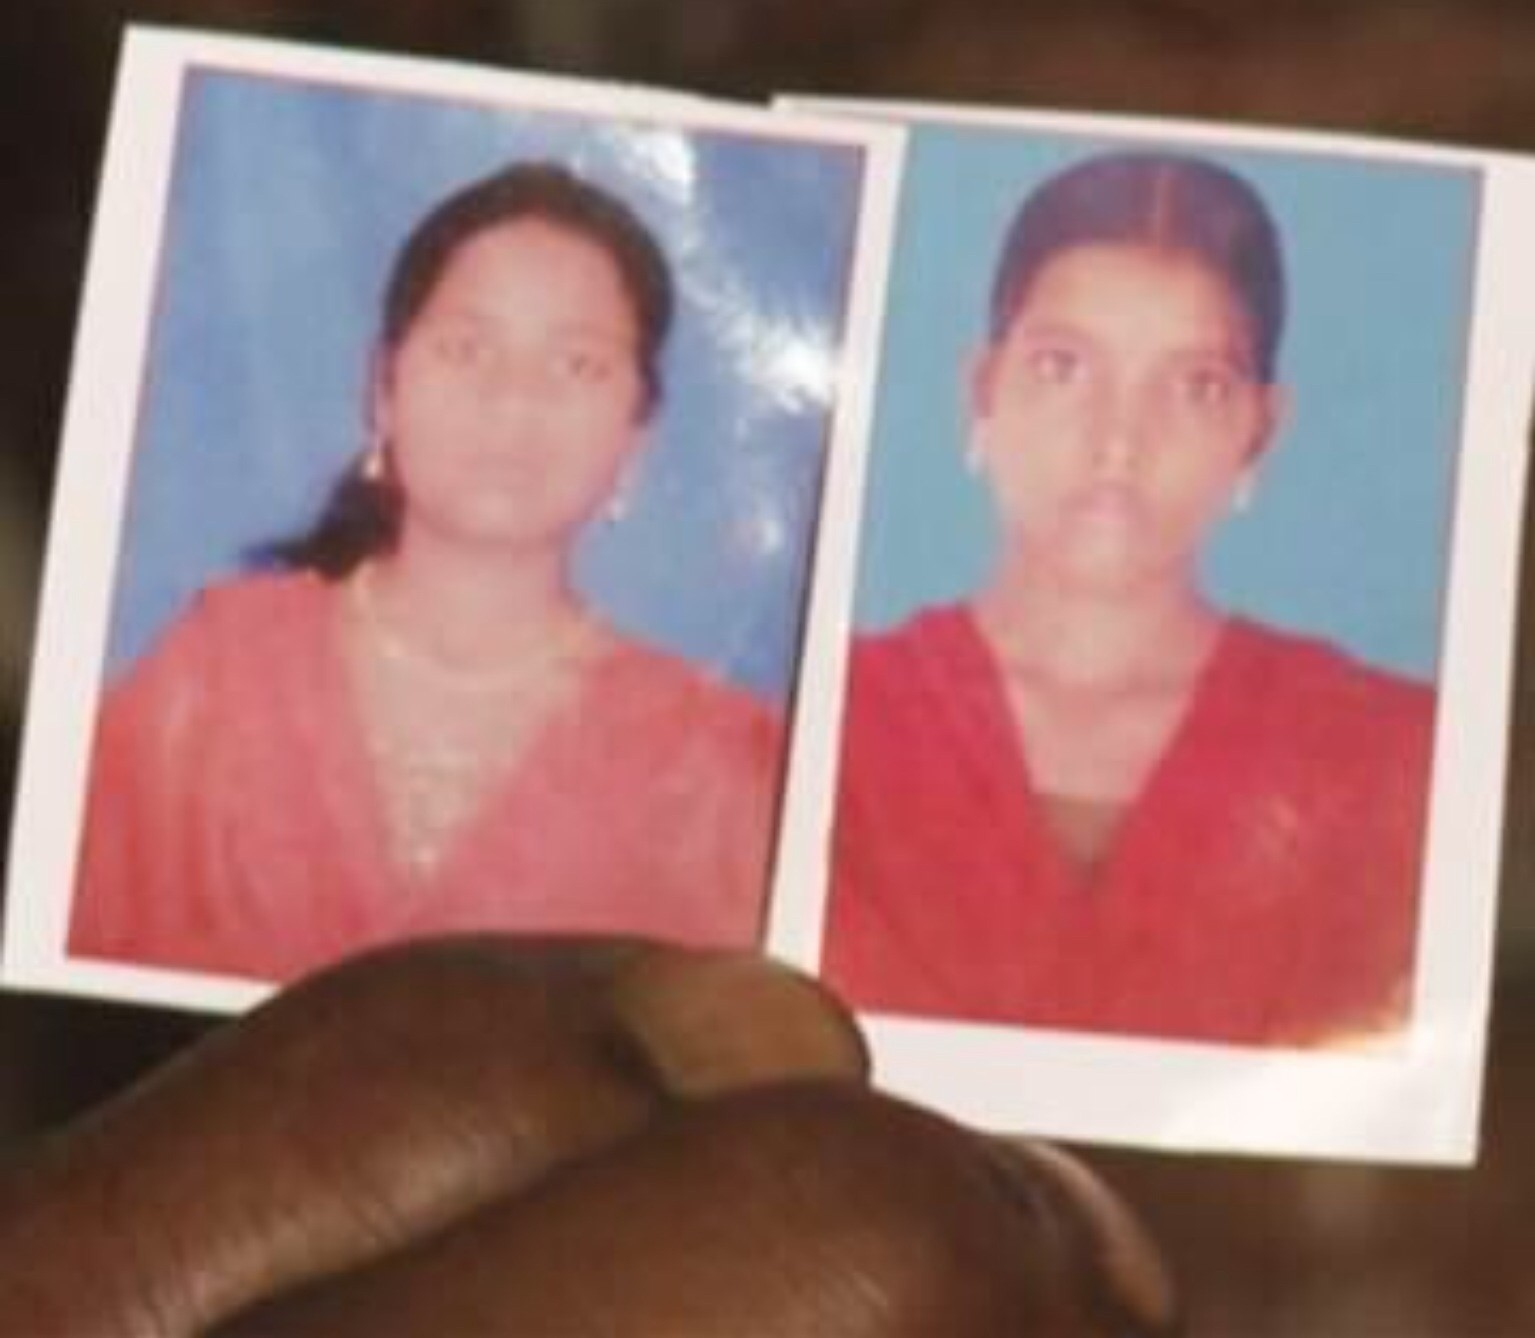 The two victims of gang rape in India. Screenshot from NBC News footage.